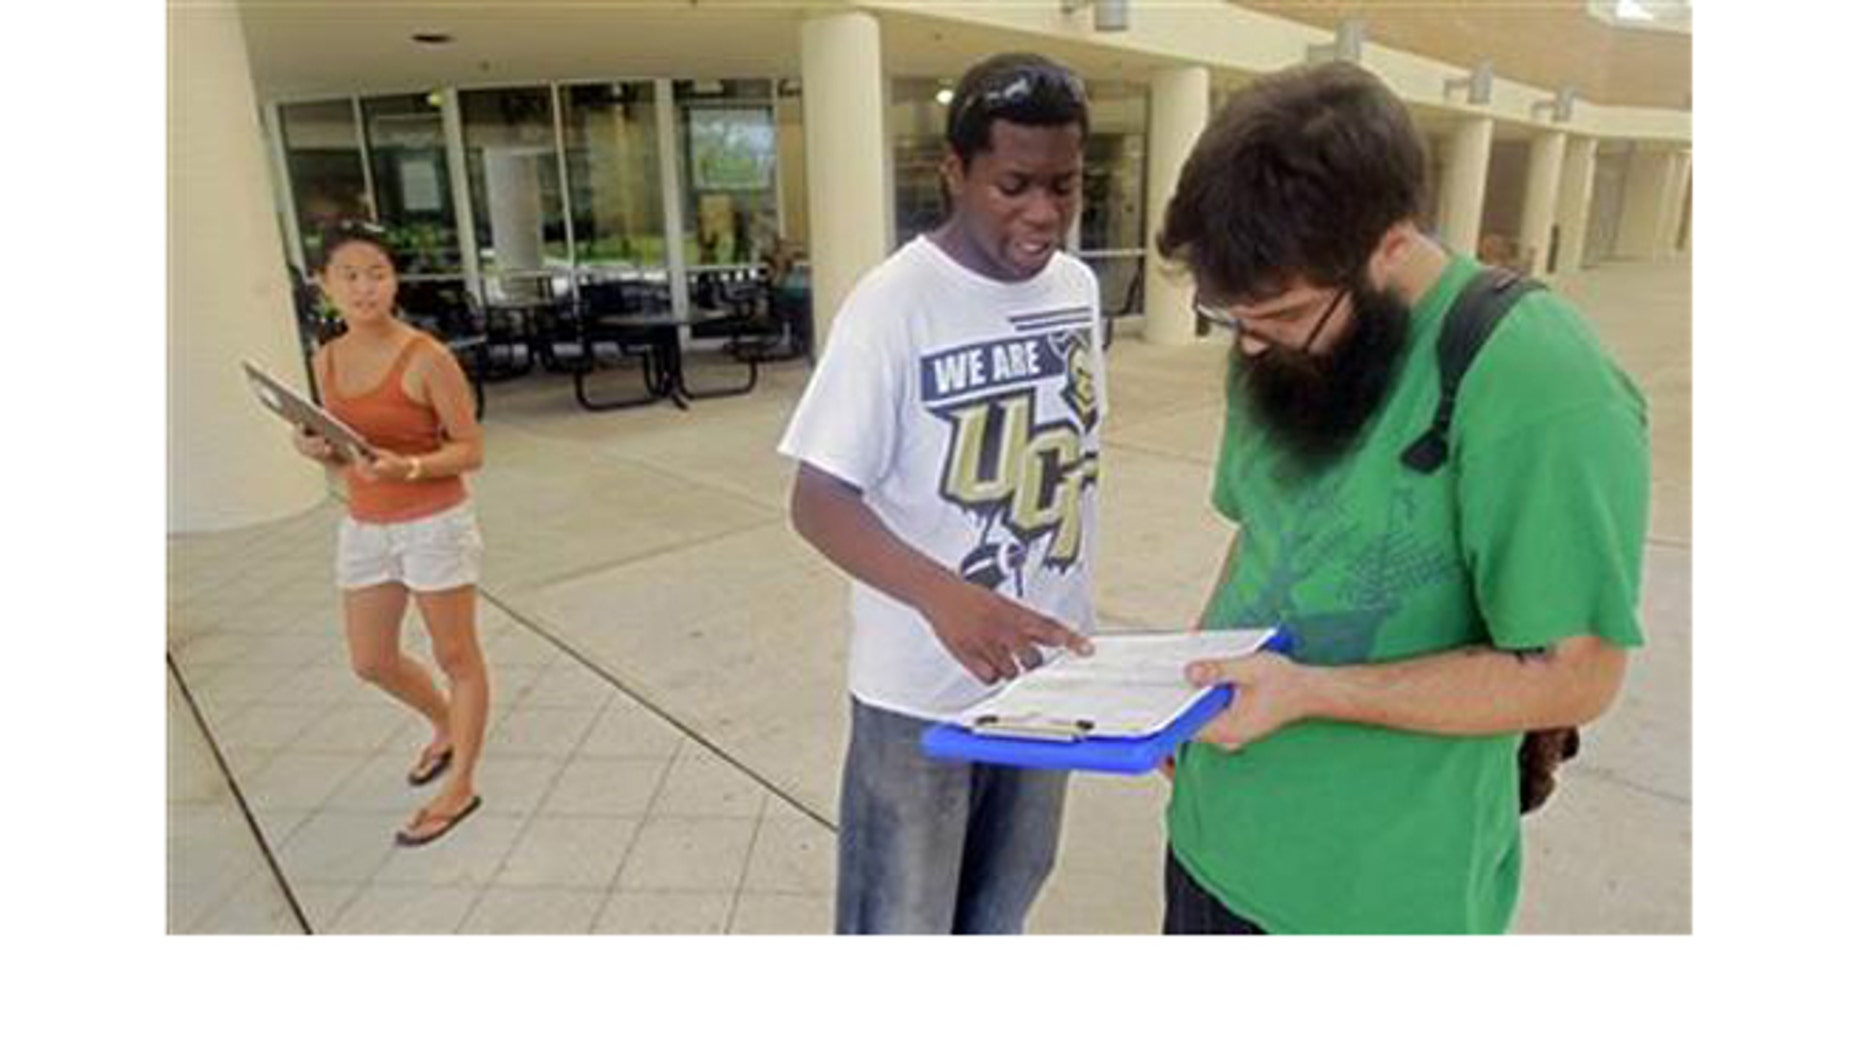 July 31, 2012: Aubrey Marks, left, watches Jordan Allen, center, as he helps student Casey Eirhstaedt, right, register to vote at the University of Central Florida in Orlando, Fla.